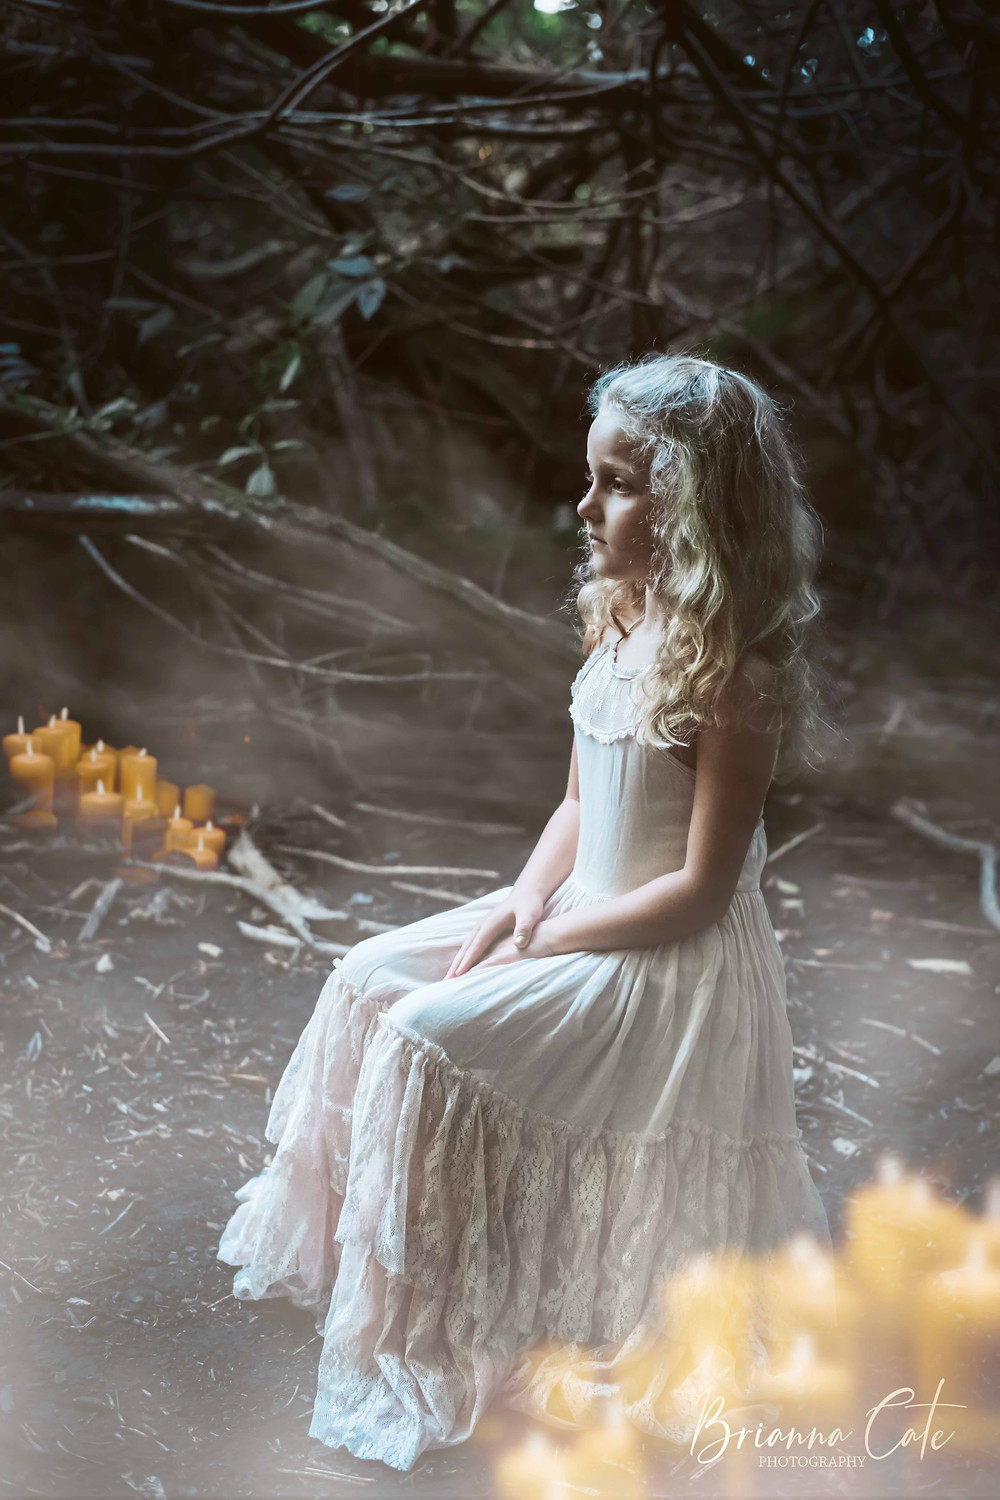 Halloween Inspired Photoshoot, Composit, Photography, Child Model, White Witch